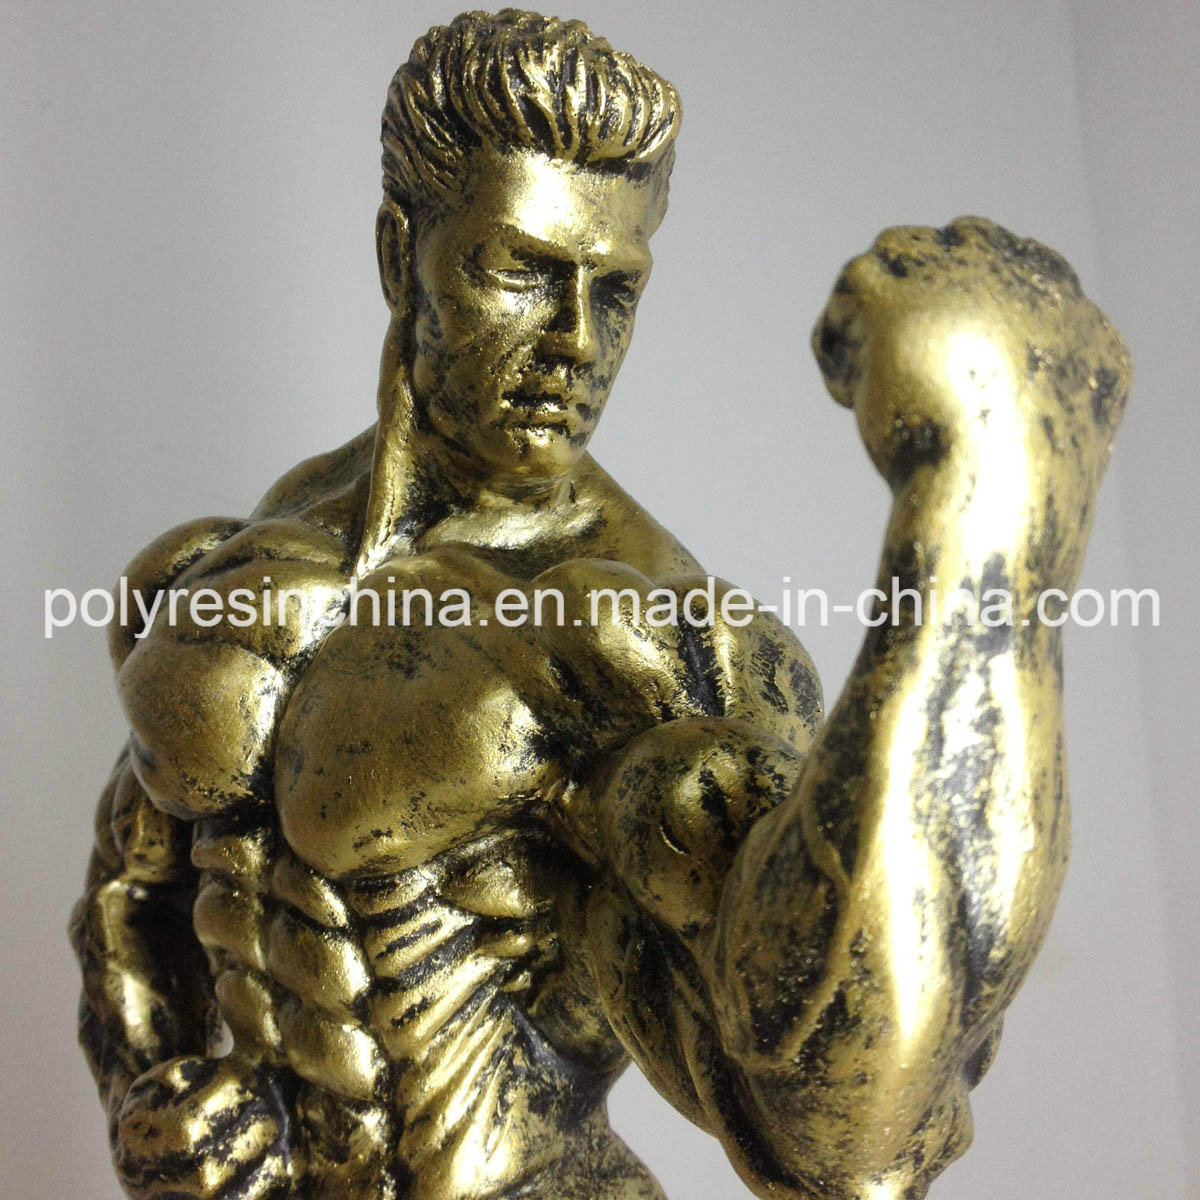 Customized Bodybuilder Statue of Resin Crafts